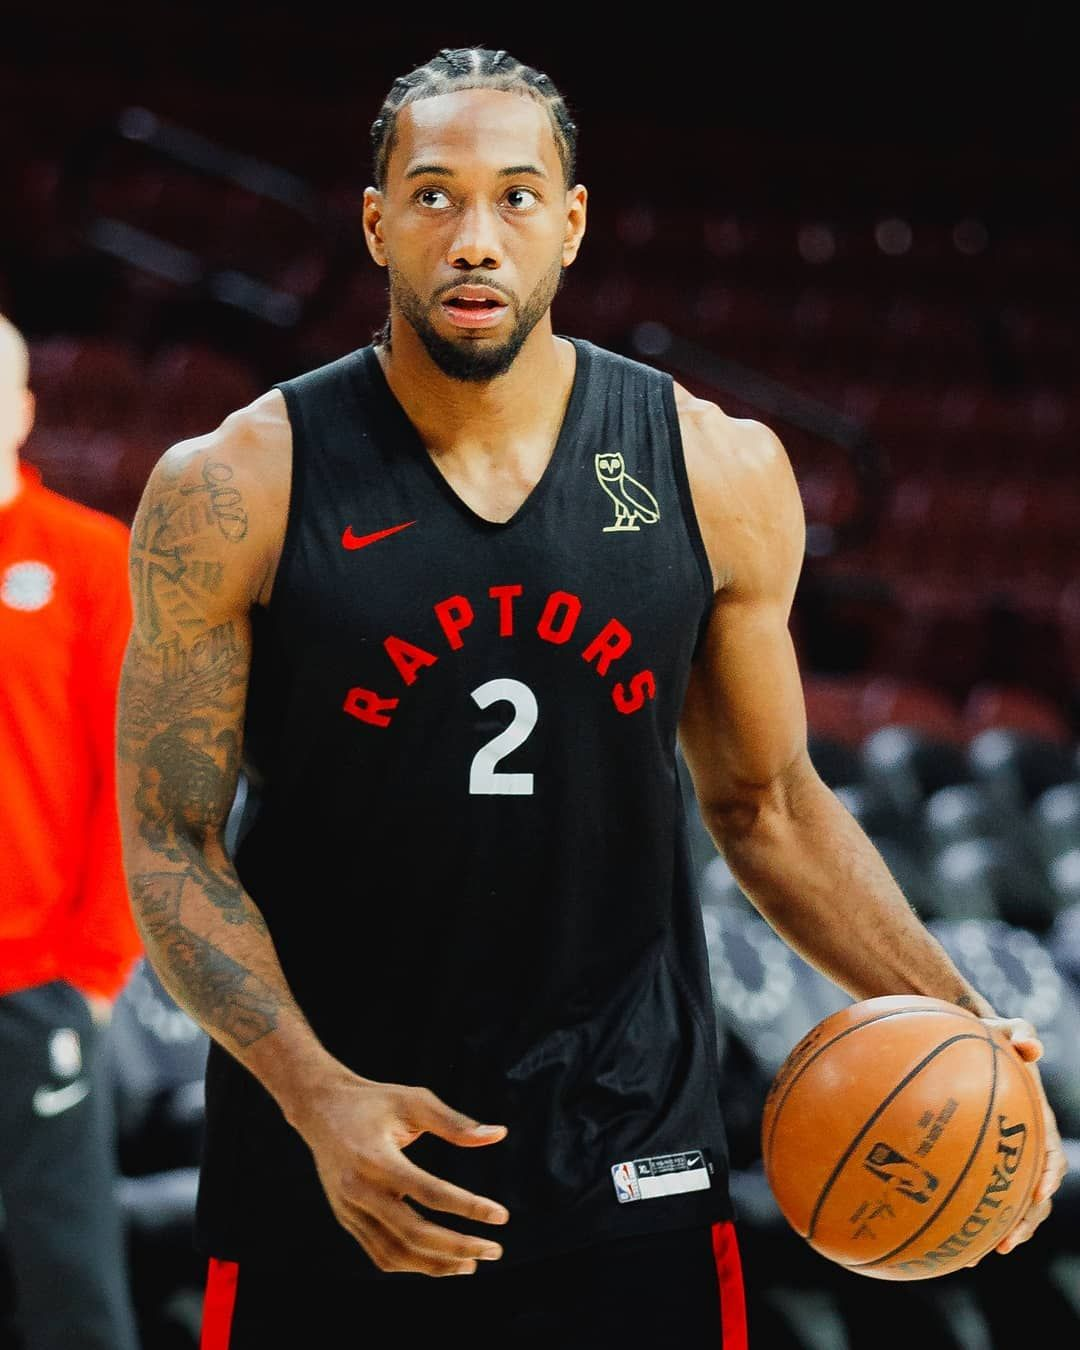 What do you think Kawhi's favorite Drake song is